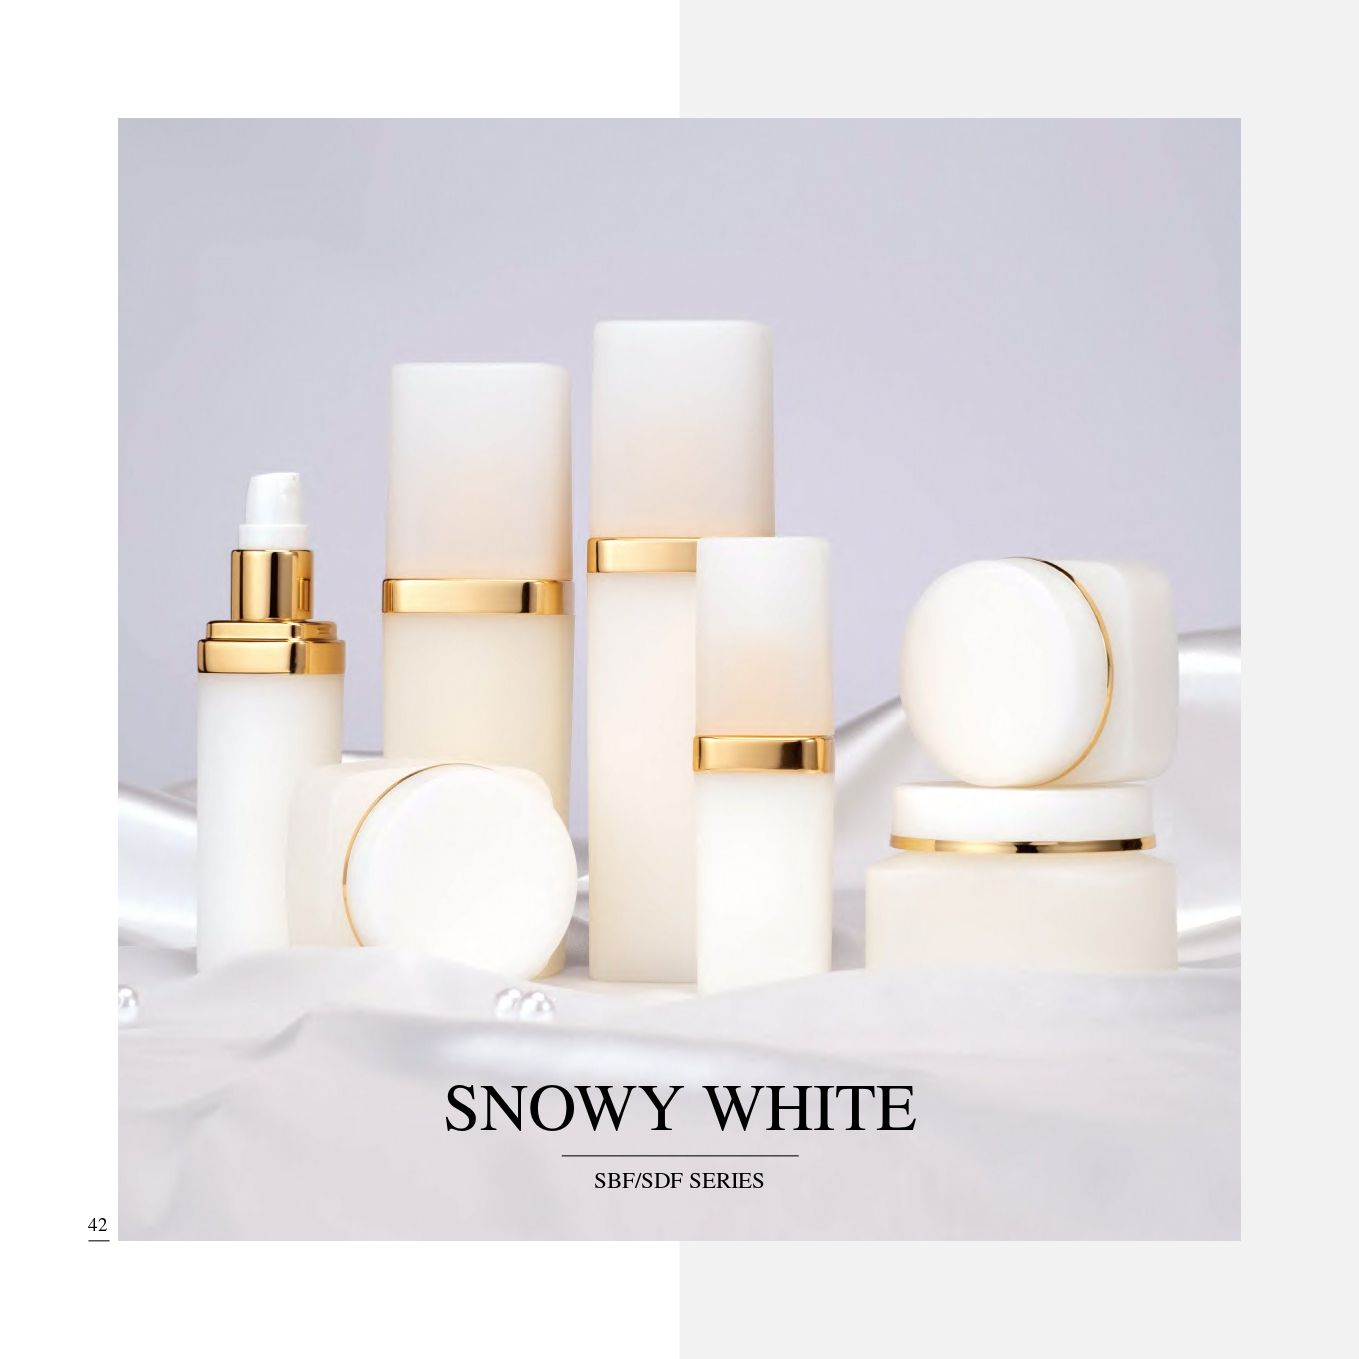 Square shape Eco PP Luxury Cosmetic & Skincare Packaging - Snow White serie - Ecofriendly PP Cosmetic Packaging Collection - Snowy White